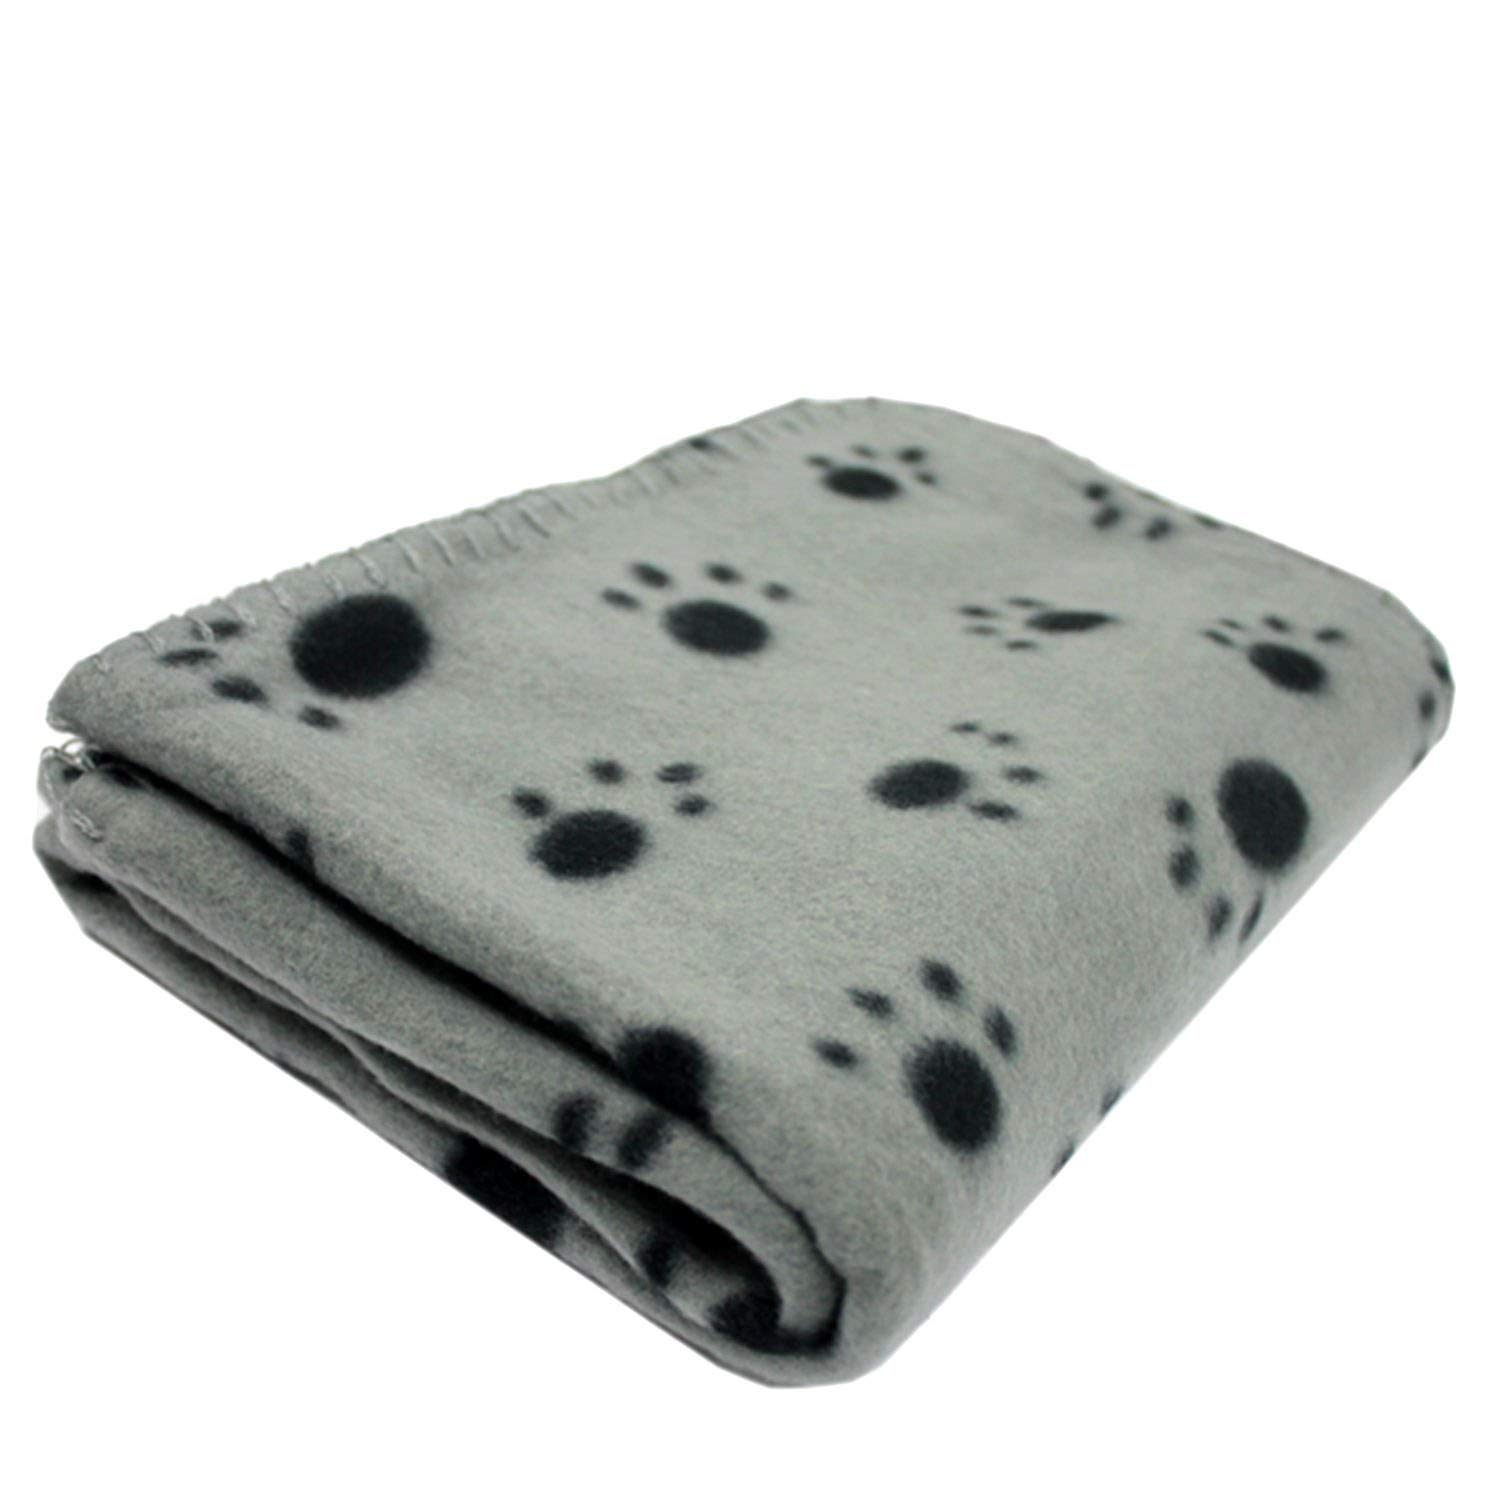 CFHJN HOME Soft Fleece Pet Blanket for Cat and Dog Paw Printed Small and Medium (60x70cm, Grey) Pet Bed Blanket